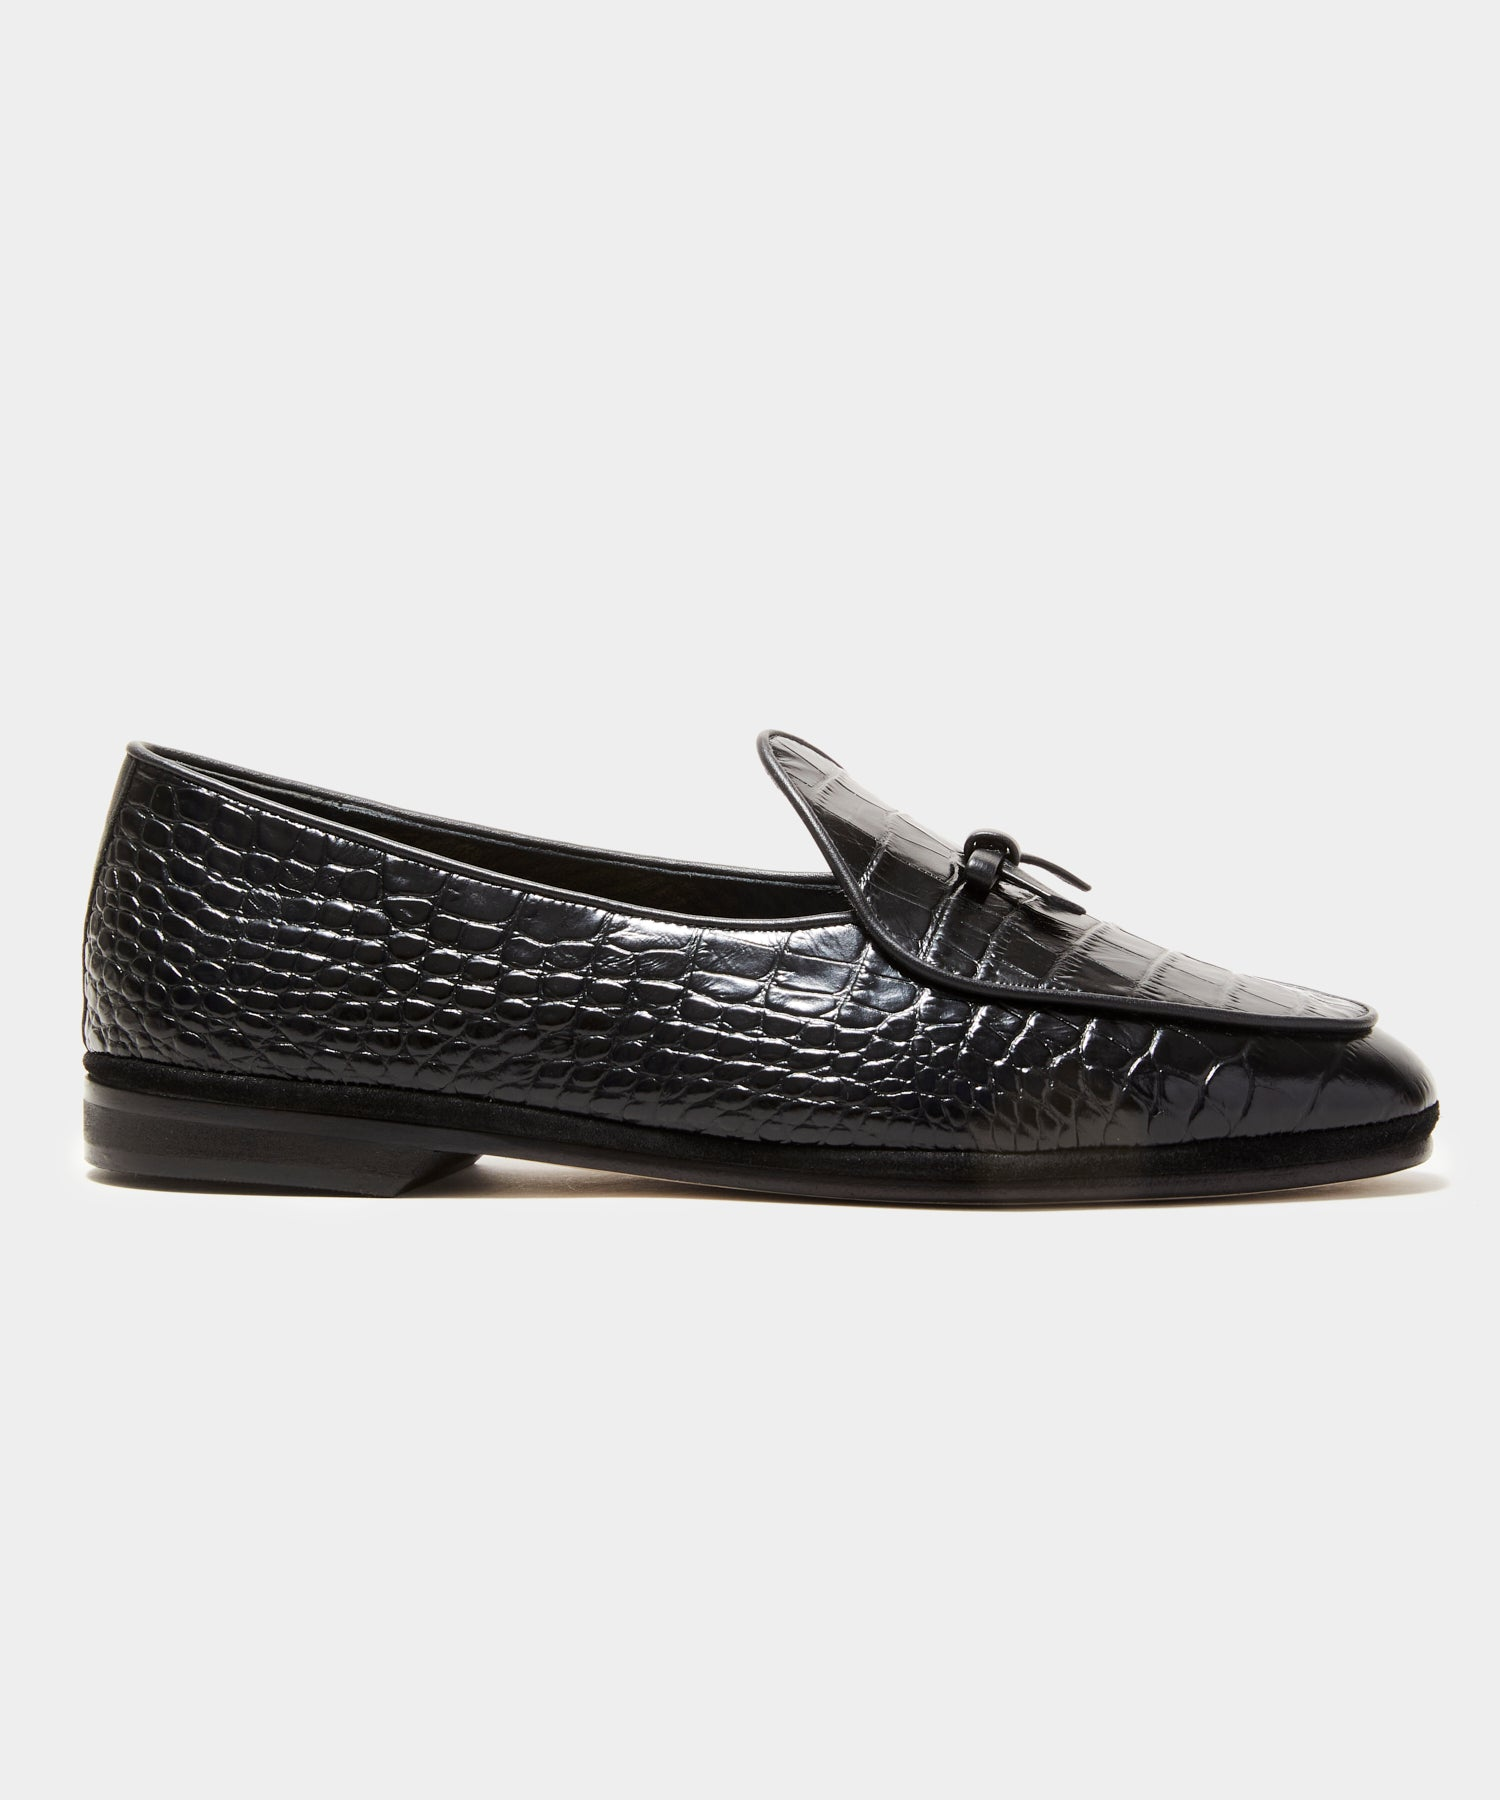 TS x Rubinacci Exclusive Marphy Loafer in Black Croc Leather